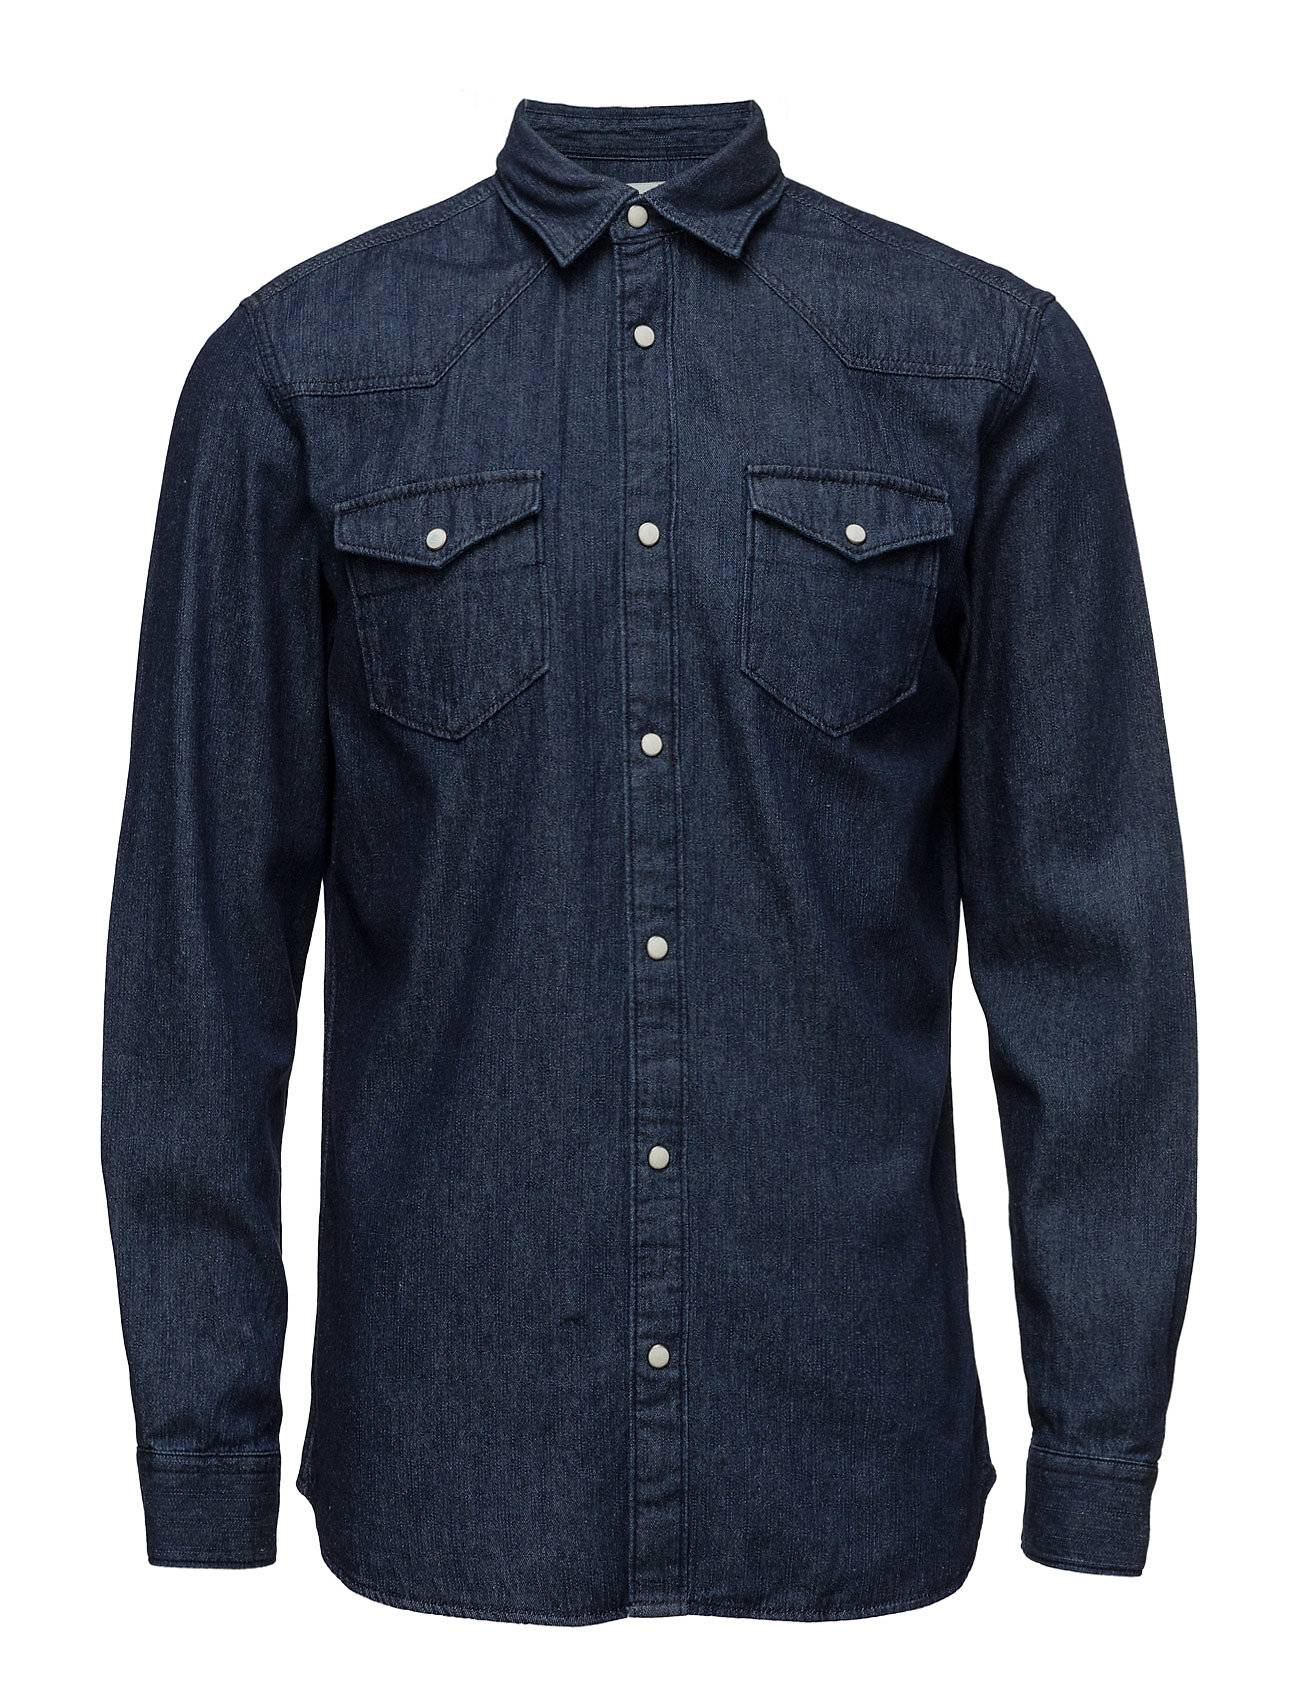 Selected Homme Shnonechad Shirt Ls